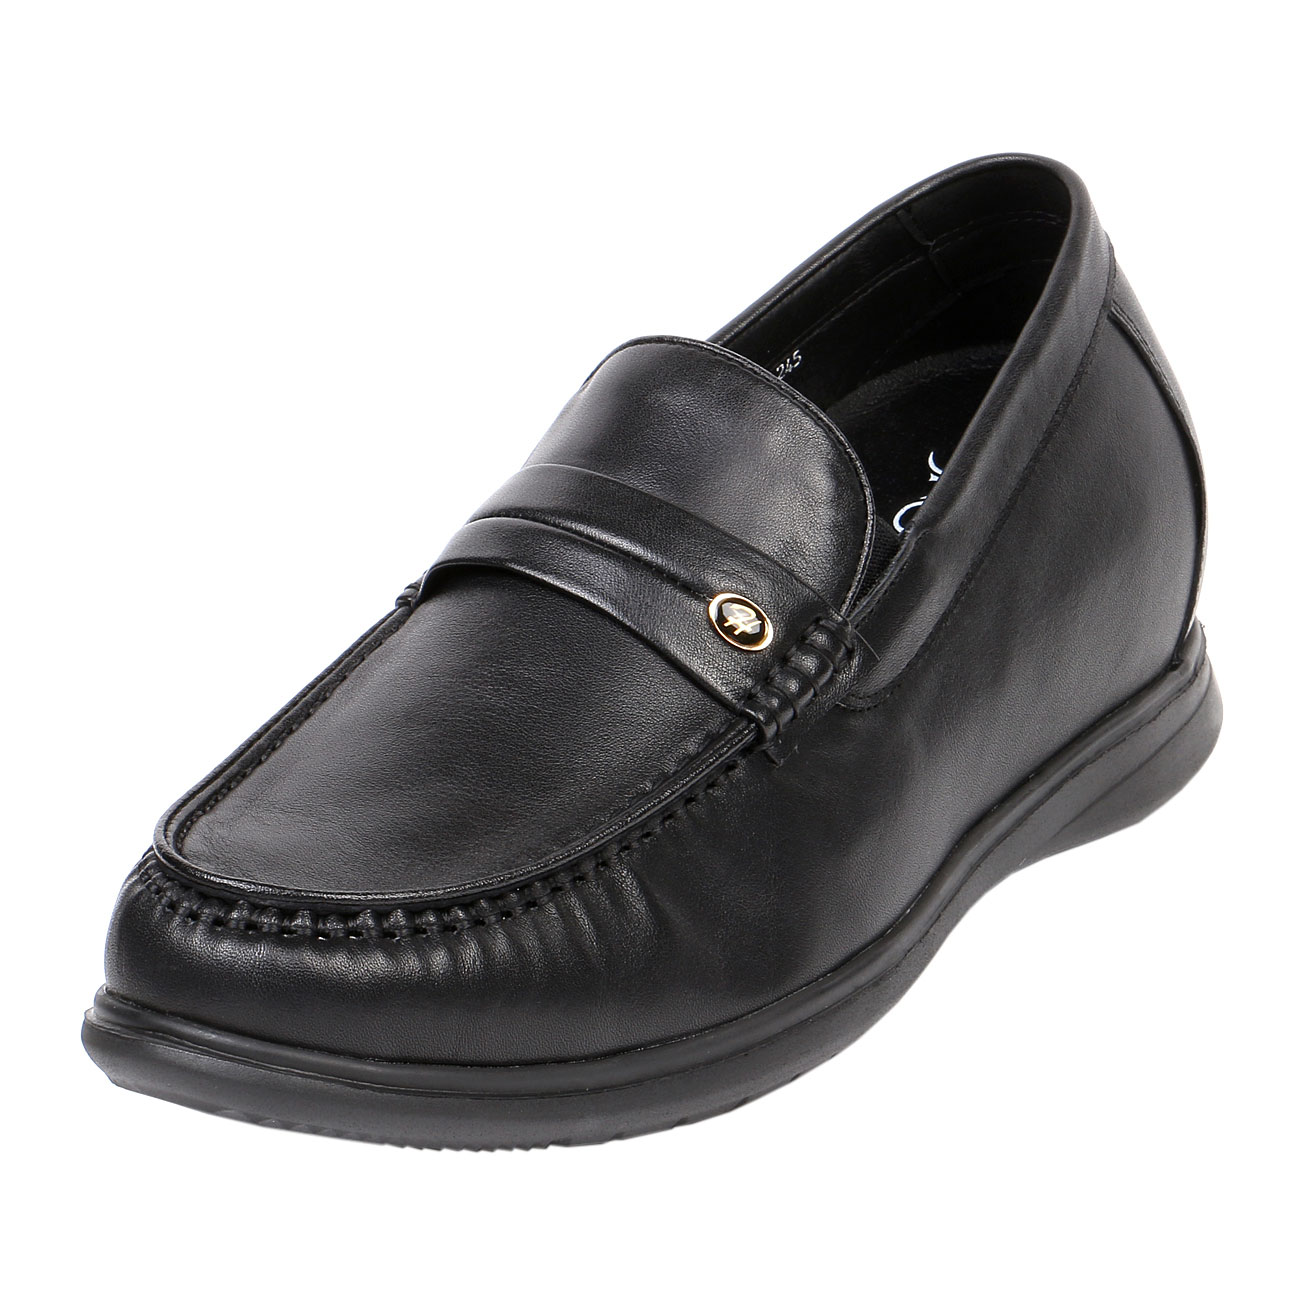 Leather Loafer Moccasin 2.8